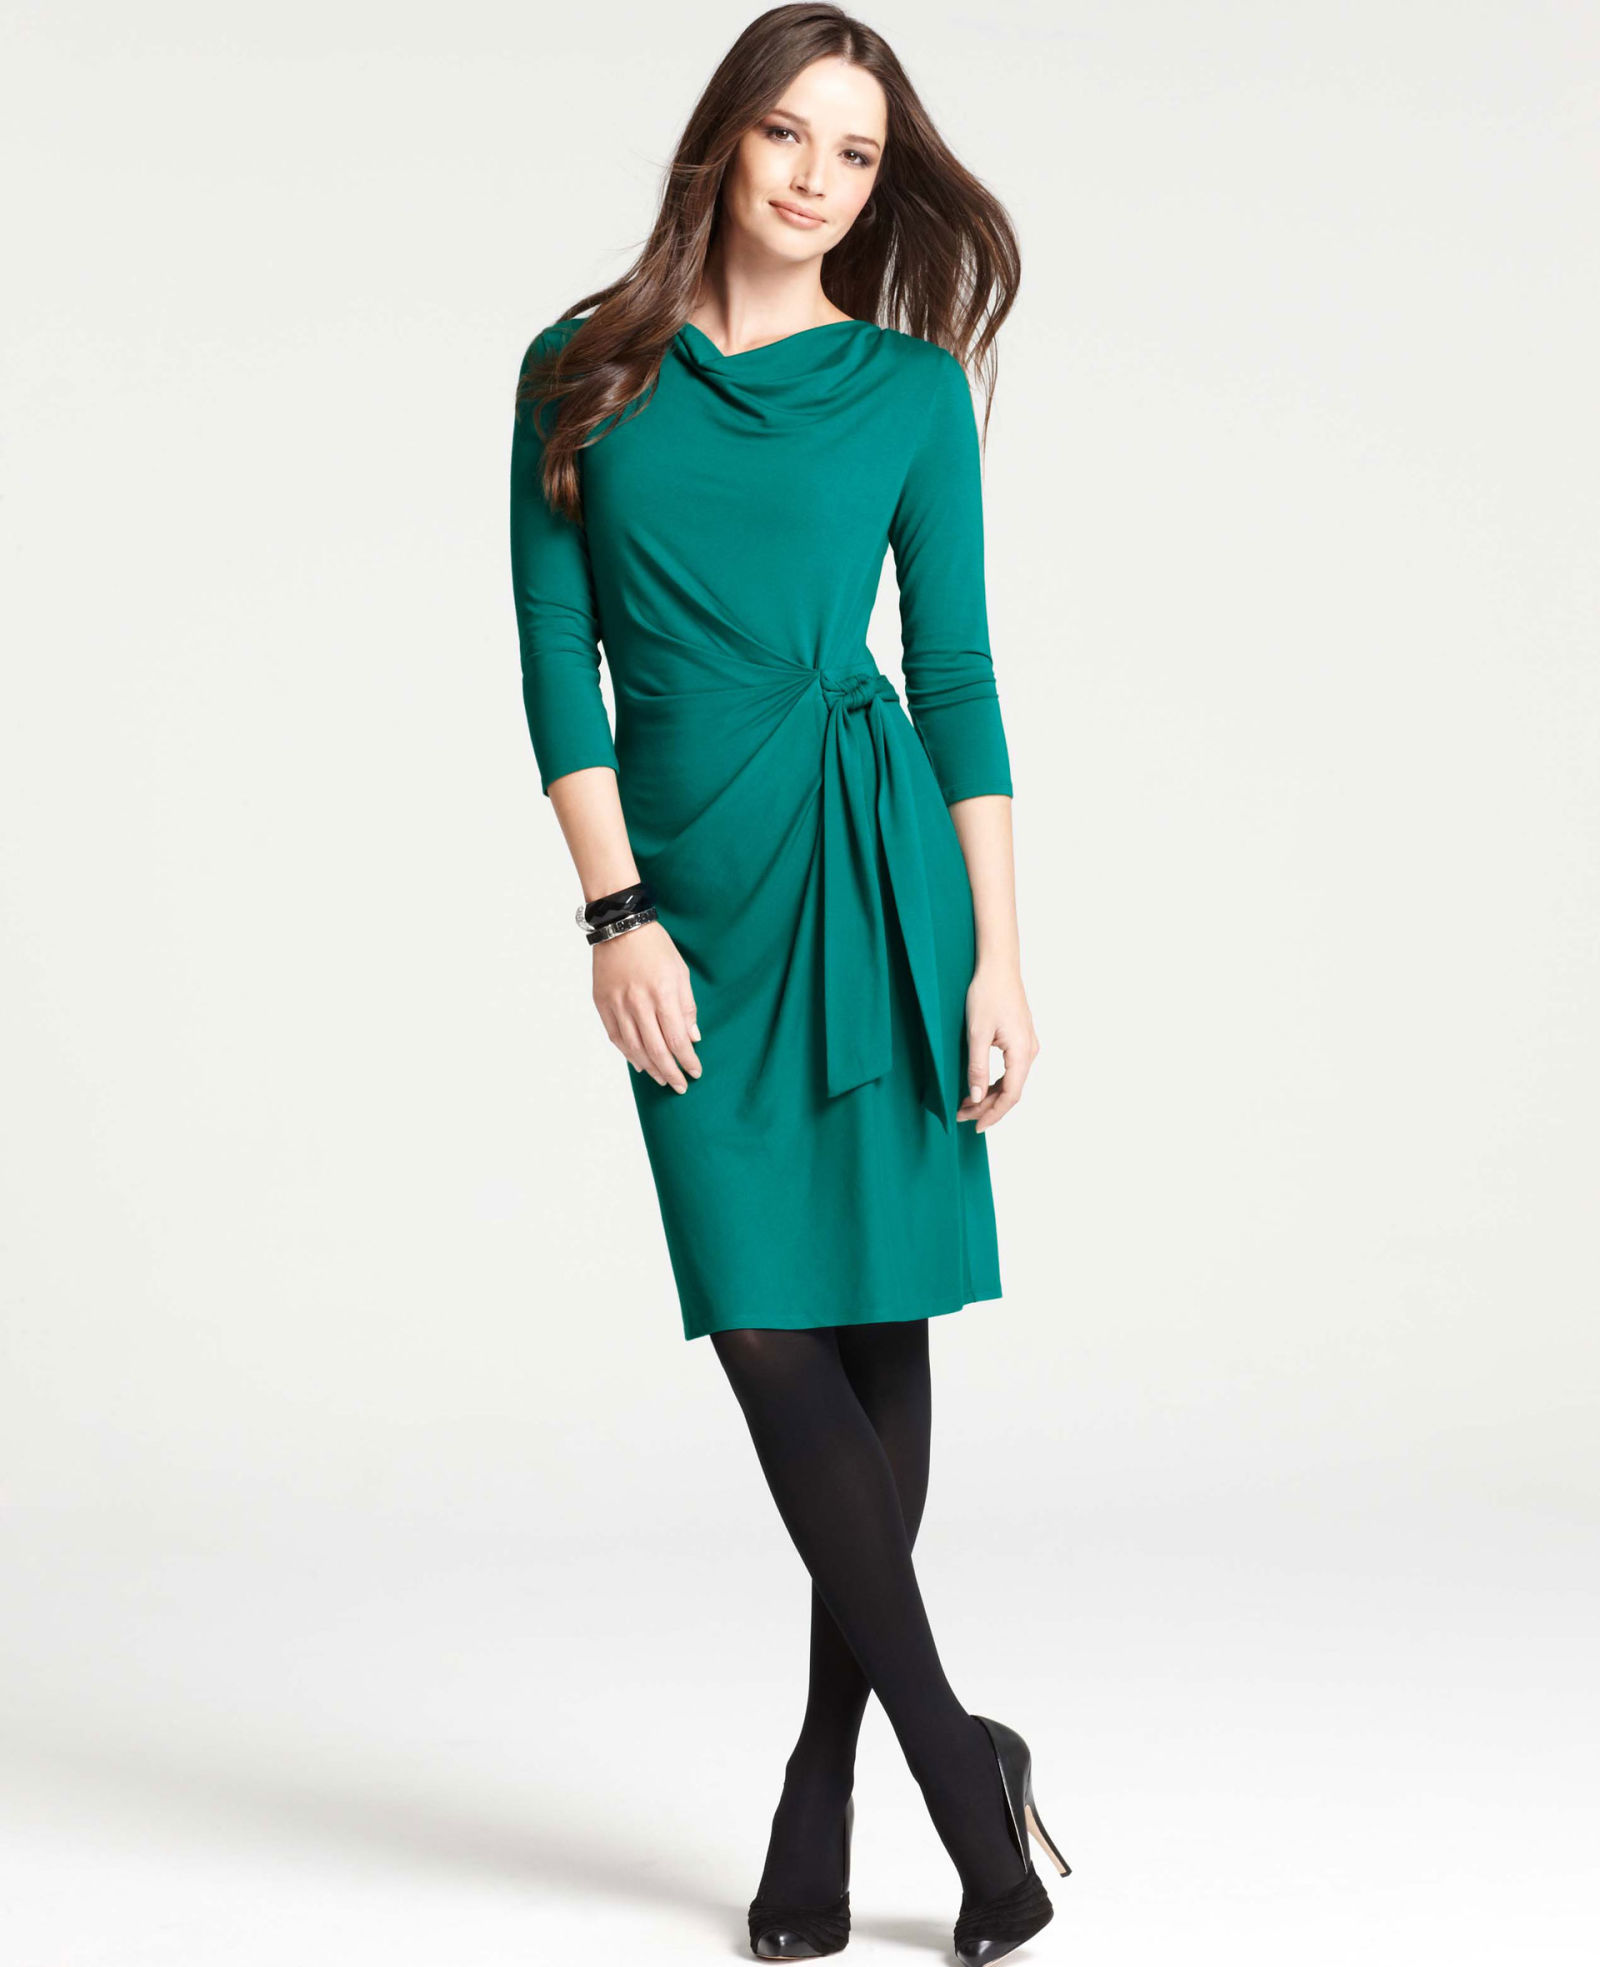 Winter Dresses for Women